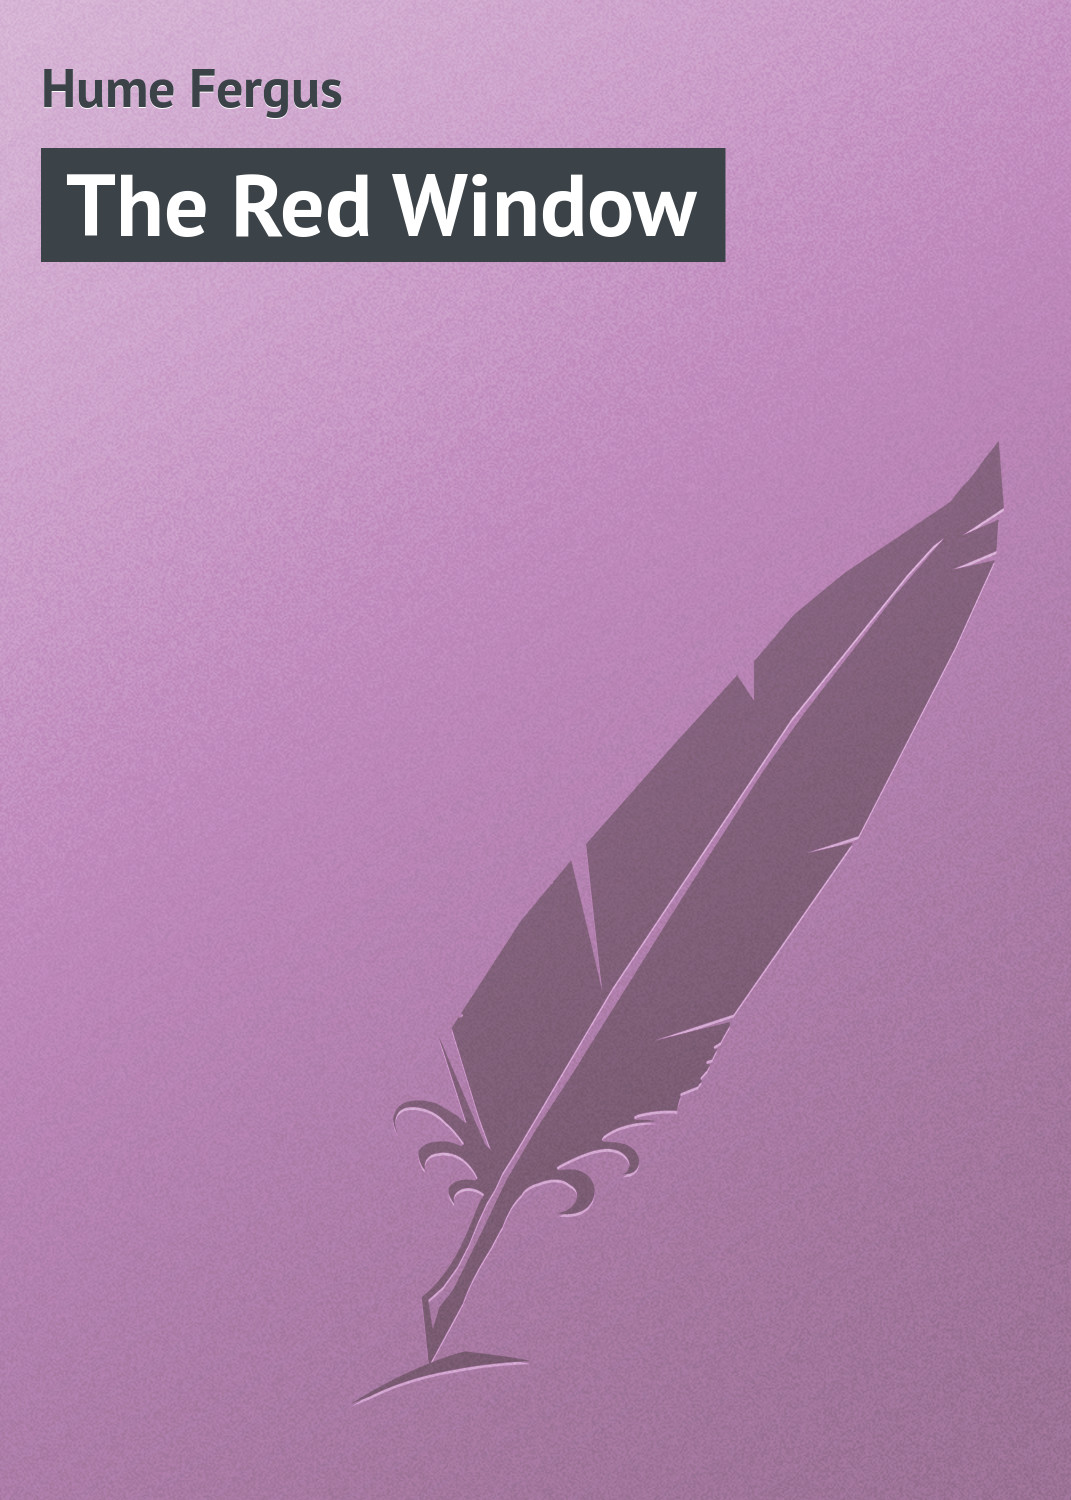 все цены на Hume Fergus The Red Window